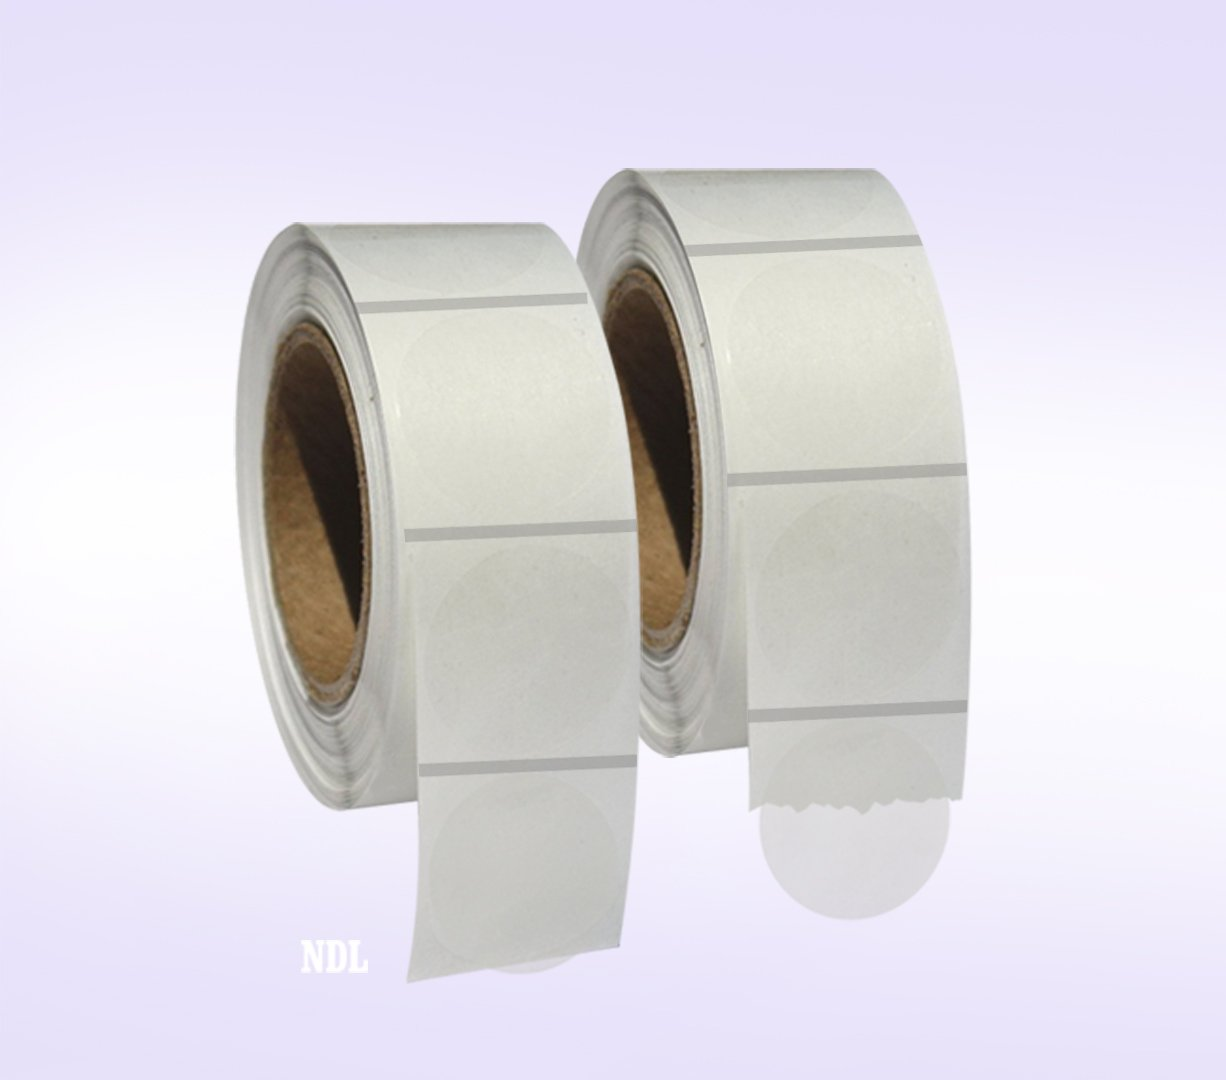 2, 000 Clear Retail Package Seals 1 Inch Round Circle Wafer Stickers/Labels 1, 000 Per Roll - 2 Rolls per pack - Total 2000 Labels per pack Next Day Labels 58823